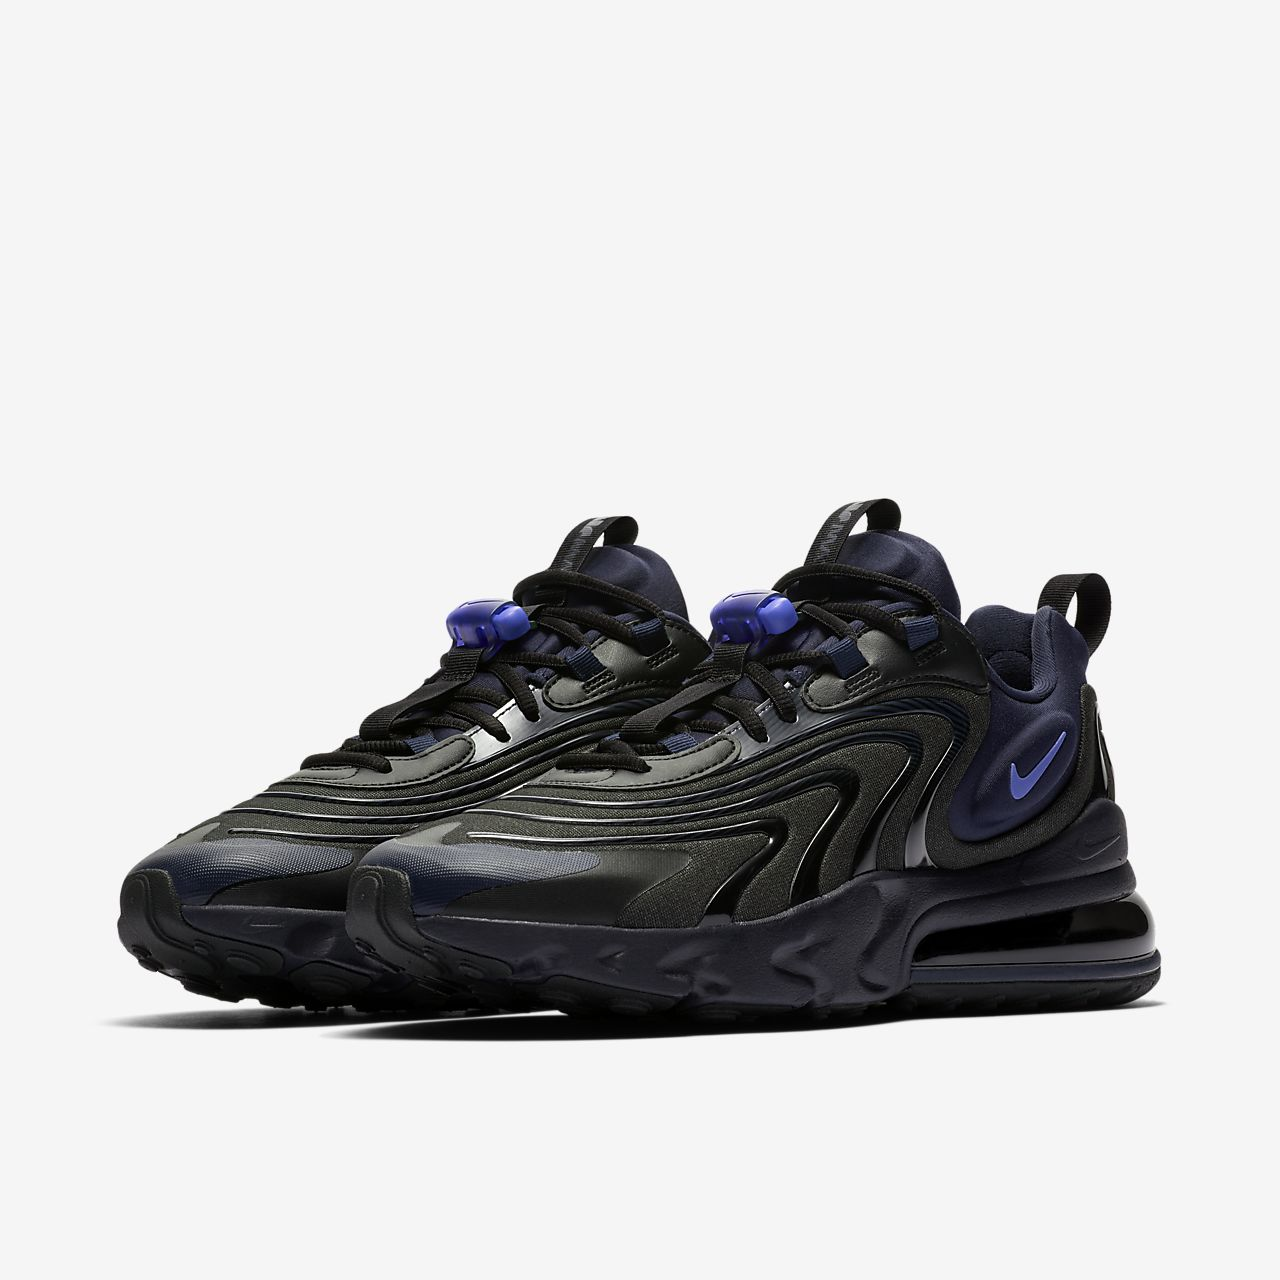 air max 270 react zalando uomo